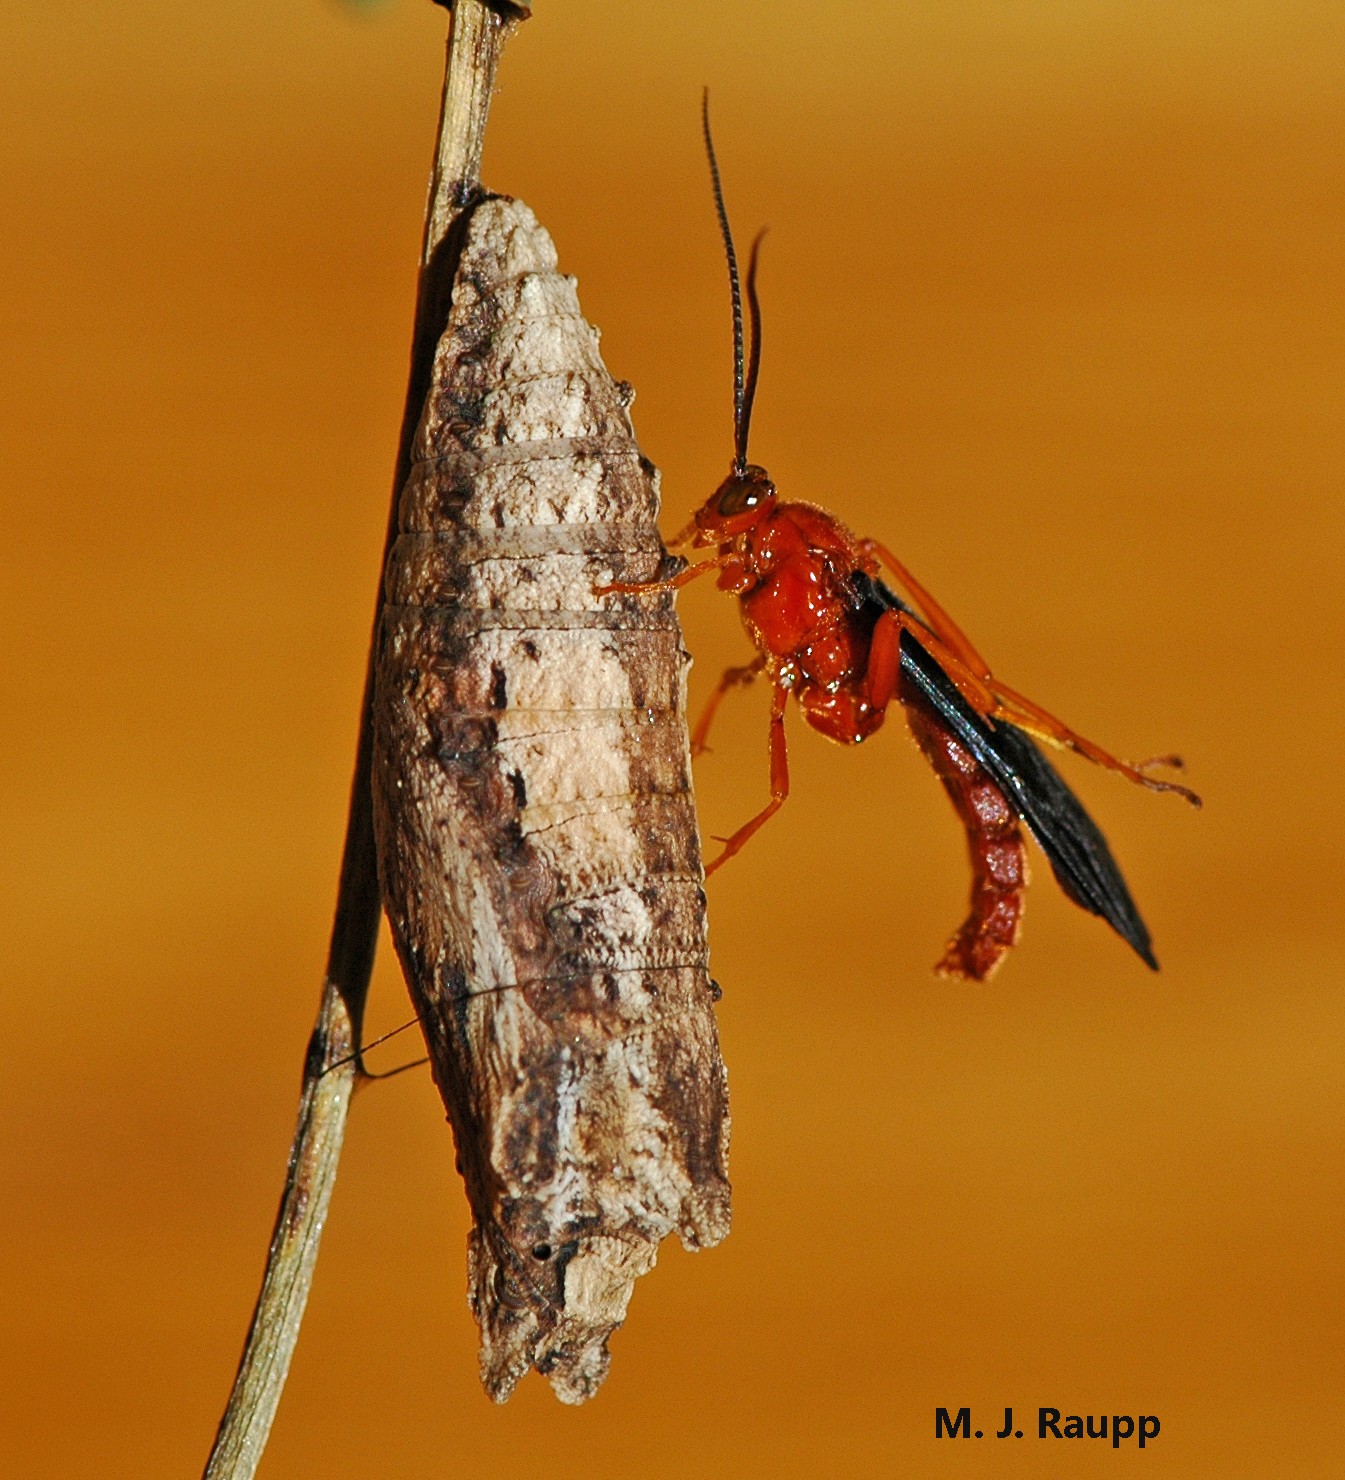 A beautiful ichneumonid wasp rests on the chrysalis of a swallowtail butterfly from which it emerged.